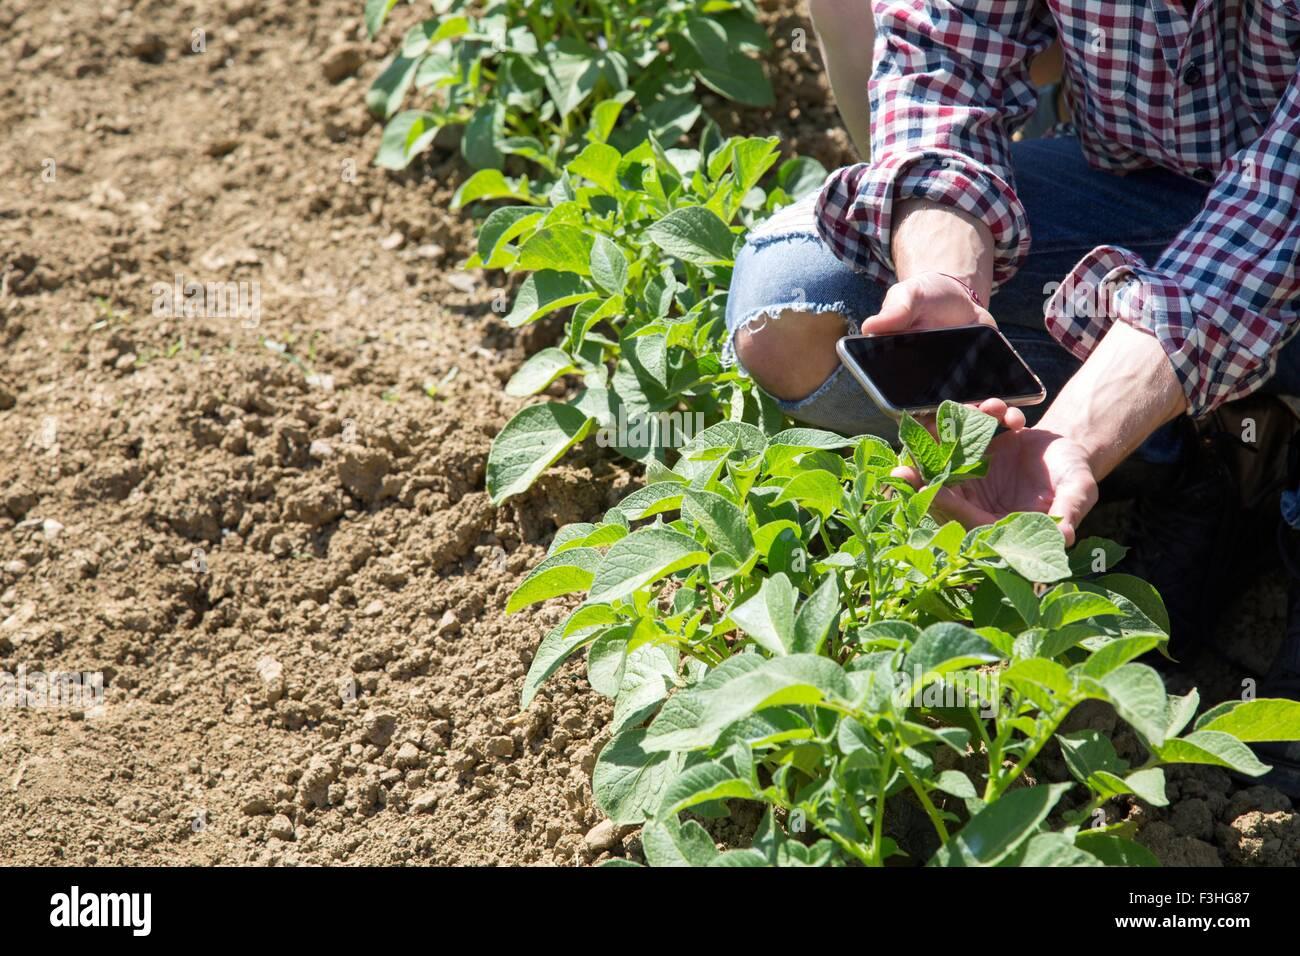 Cropped view of young man crouched in vegetable garden holding smartphone - Stock Image